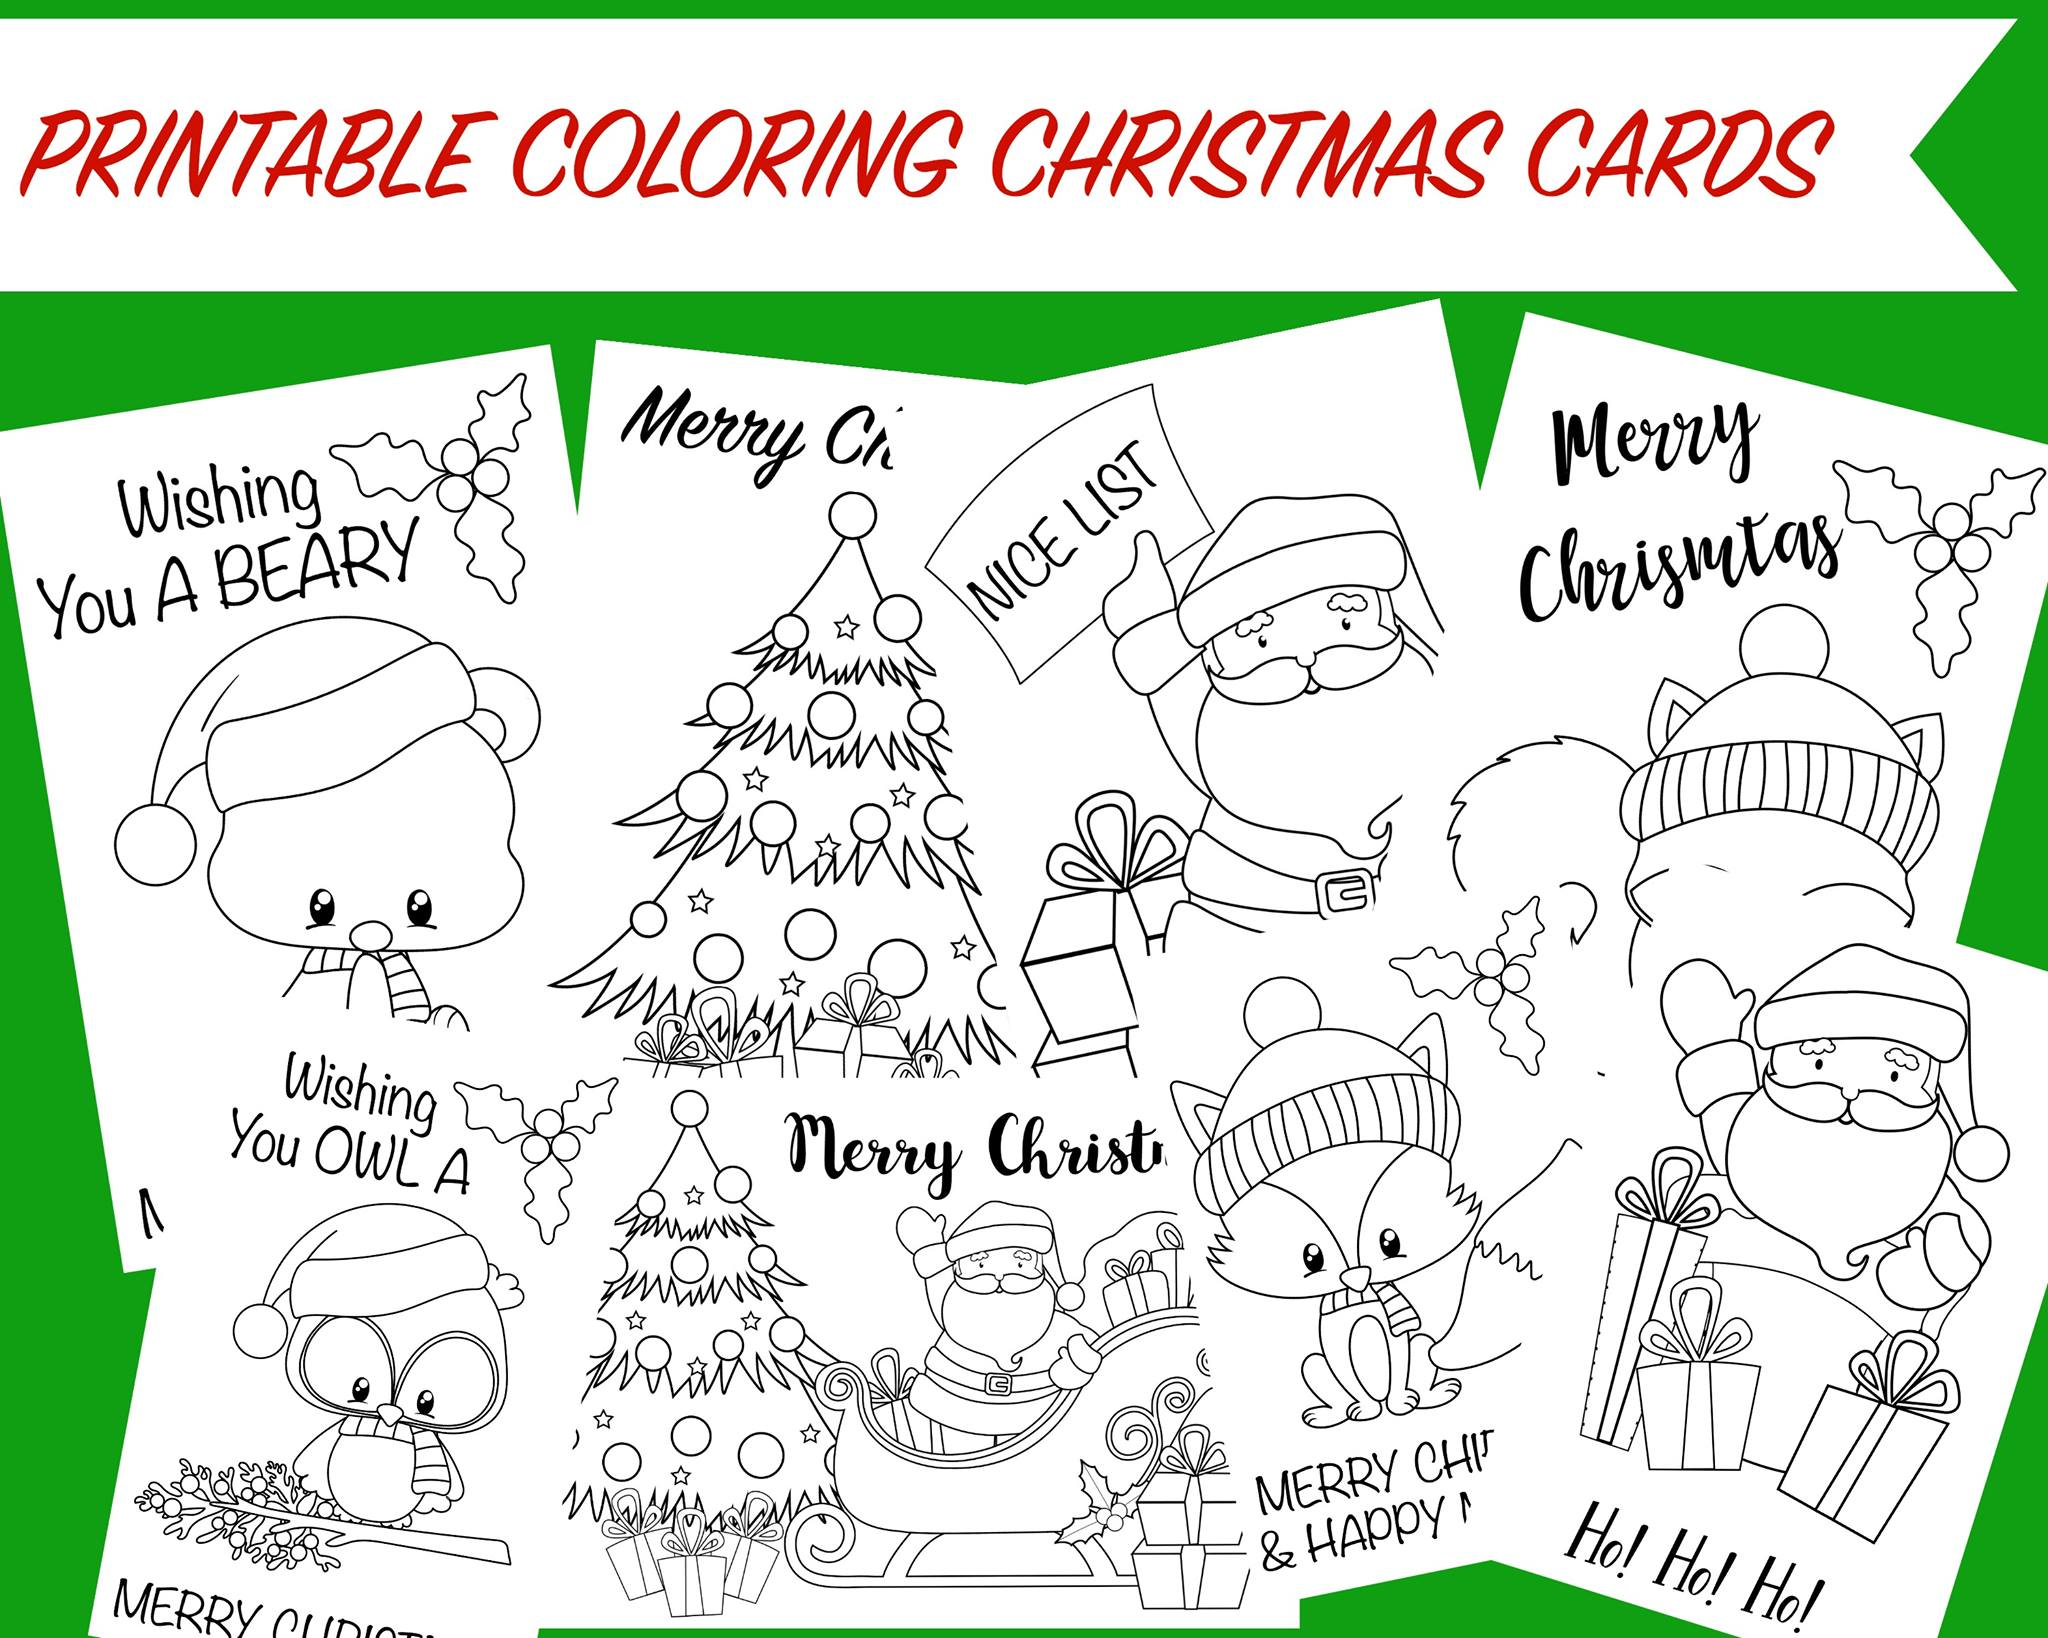 Christmas Coloring Printable Cards With Free Activity For Kids